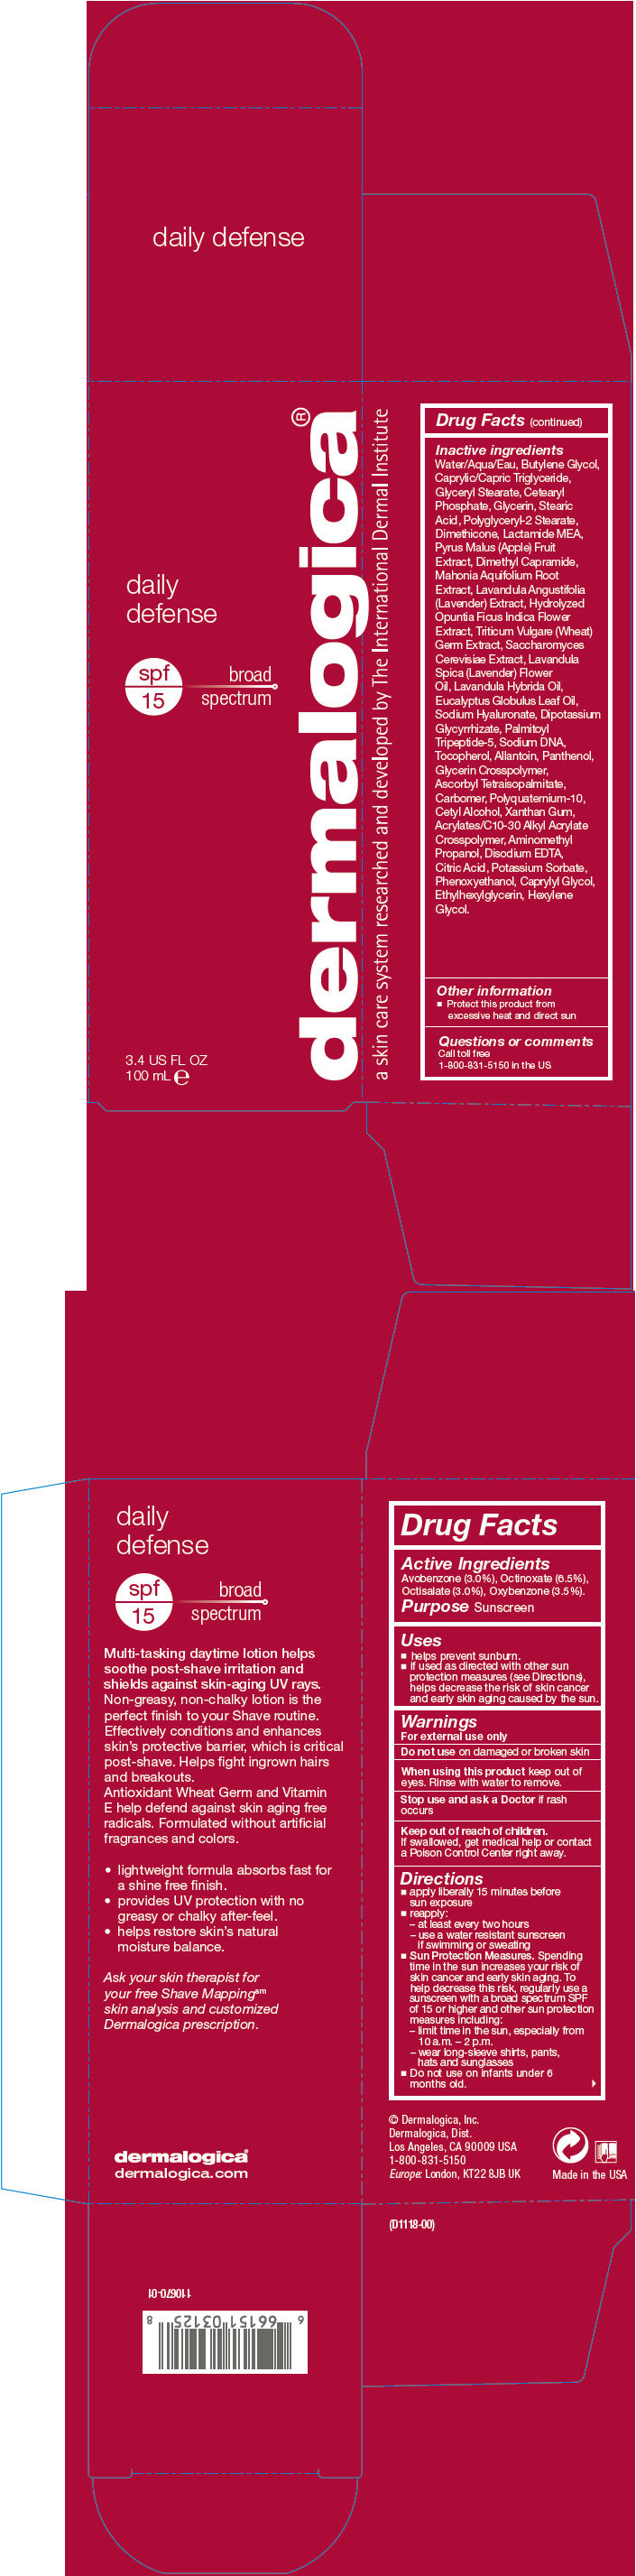 Daily Defense Spf 15 (Avobenzone, Octinoxate, Octisalate, And Oxybenzone) Lotion [Dermalogica, Inc.]